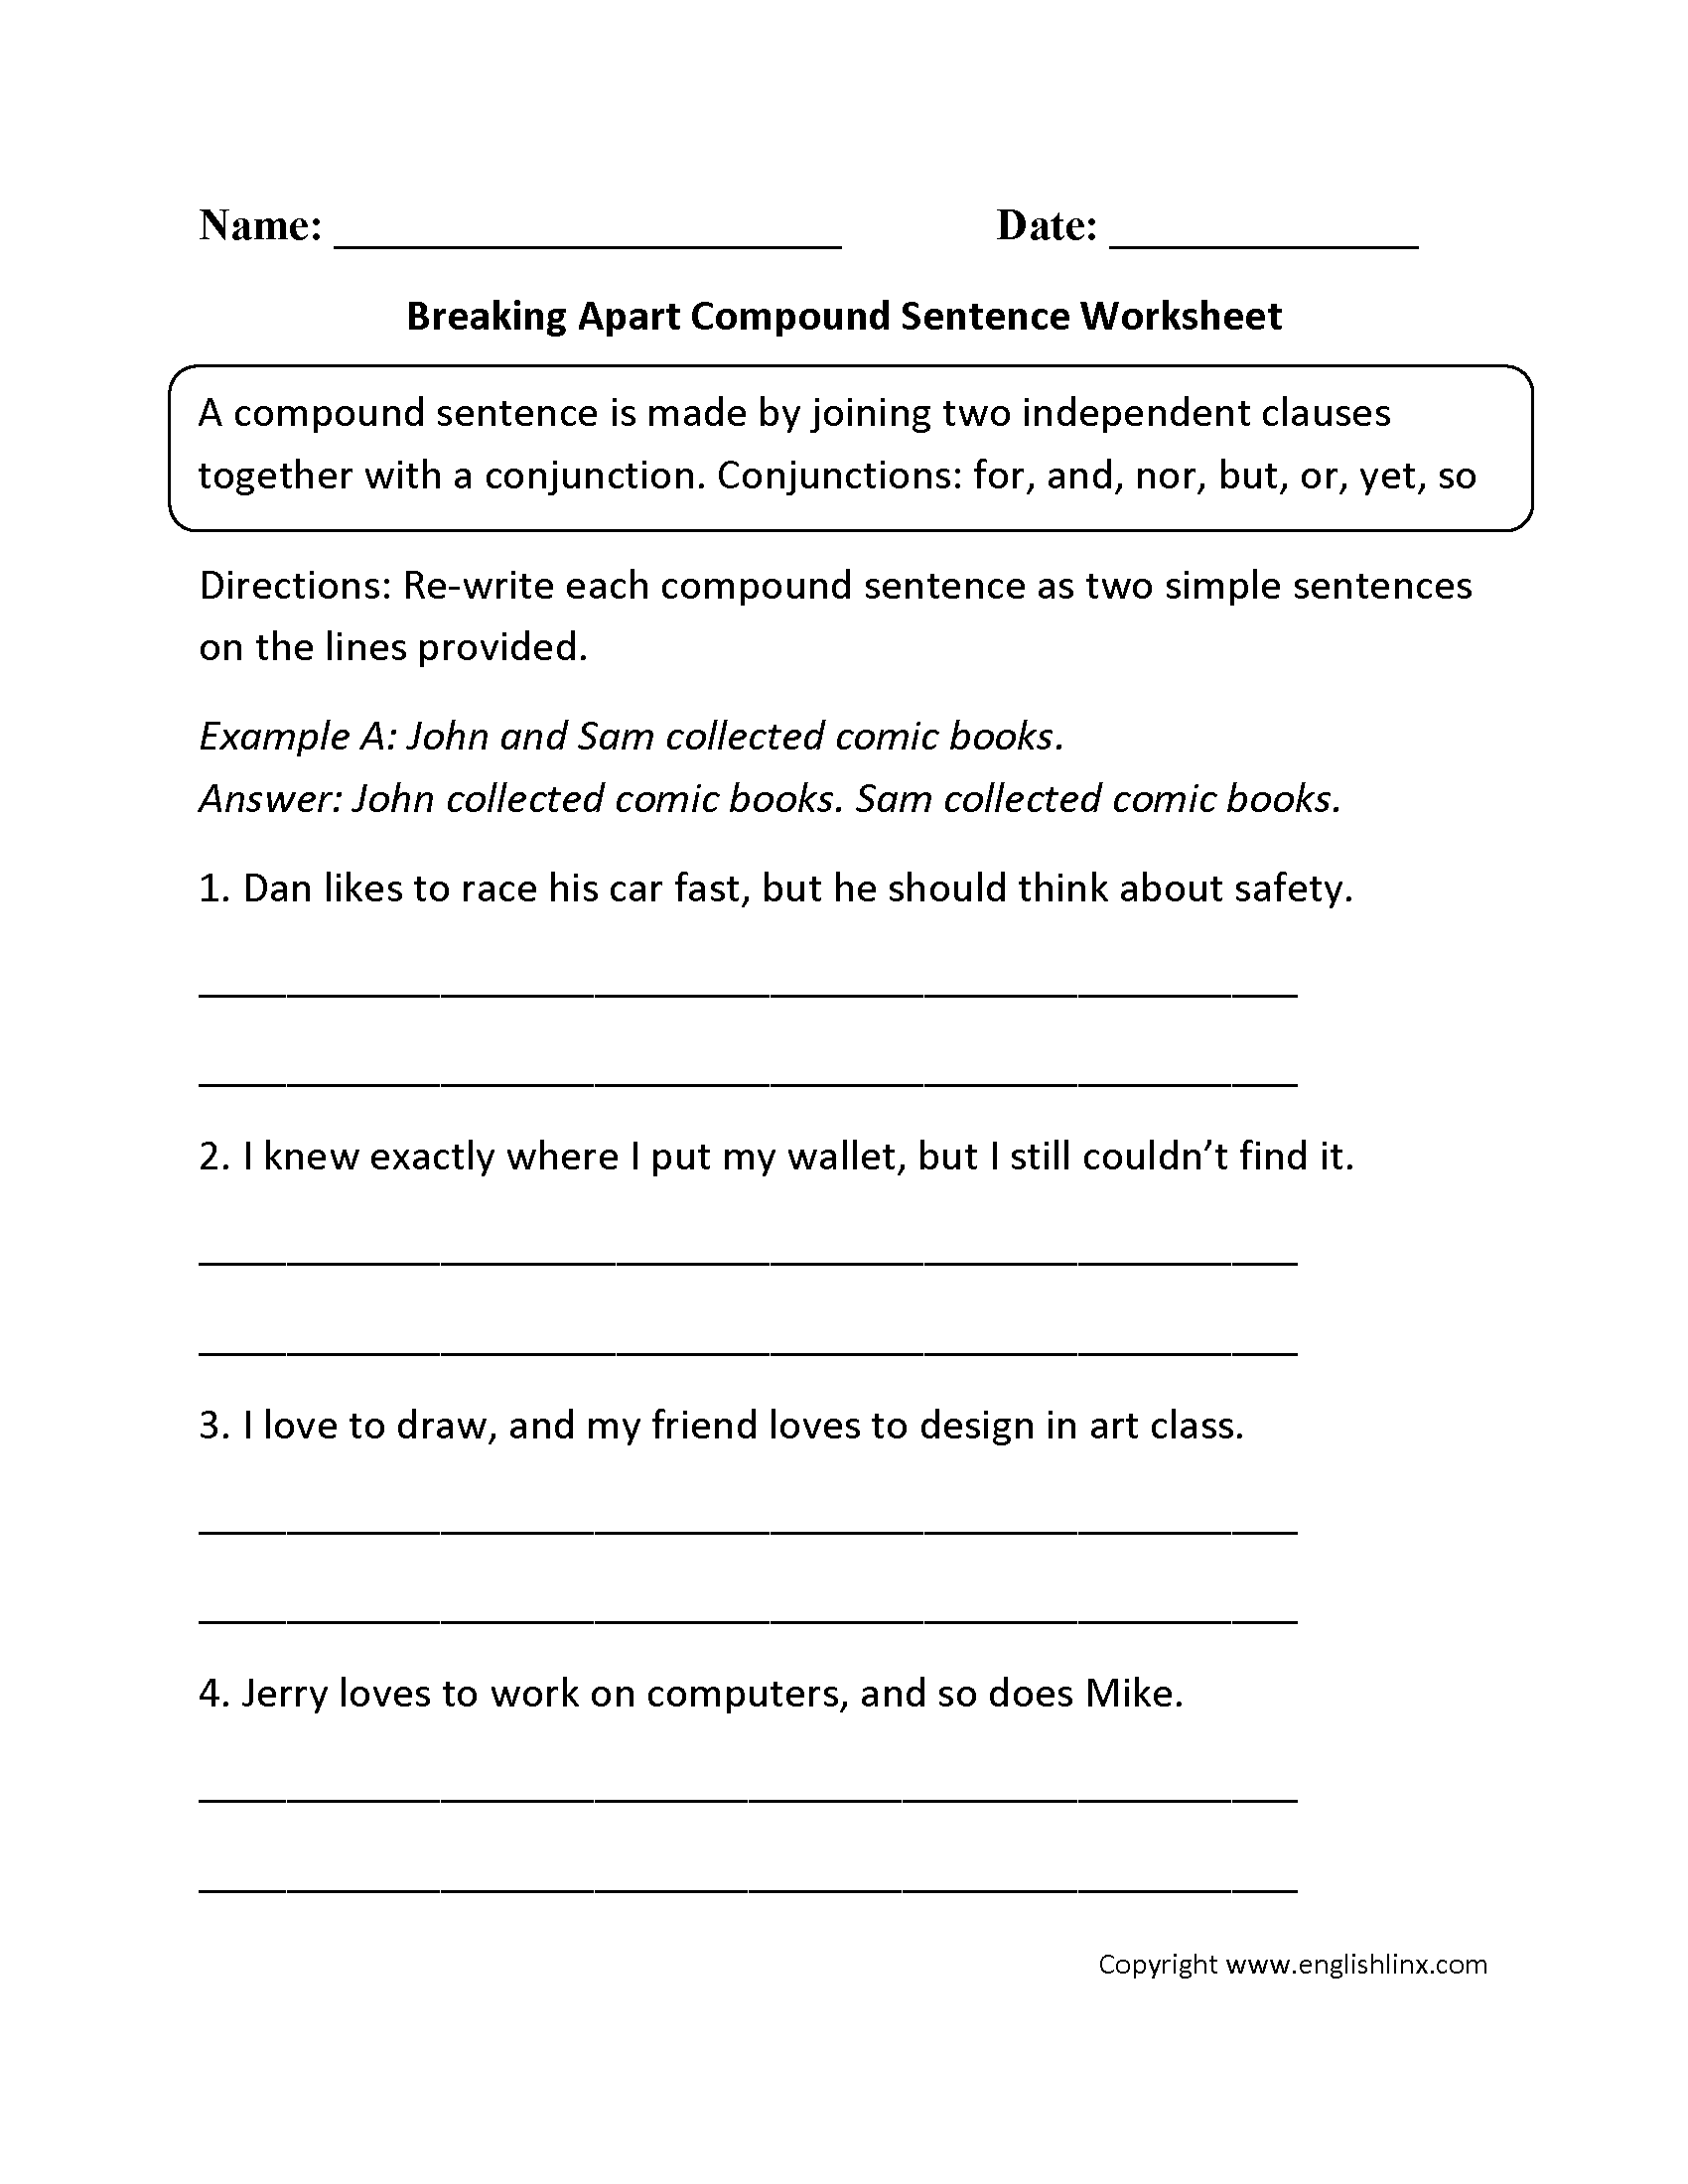 Breaking Apart Compound Sentence Worksheet